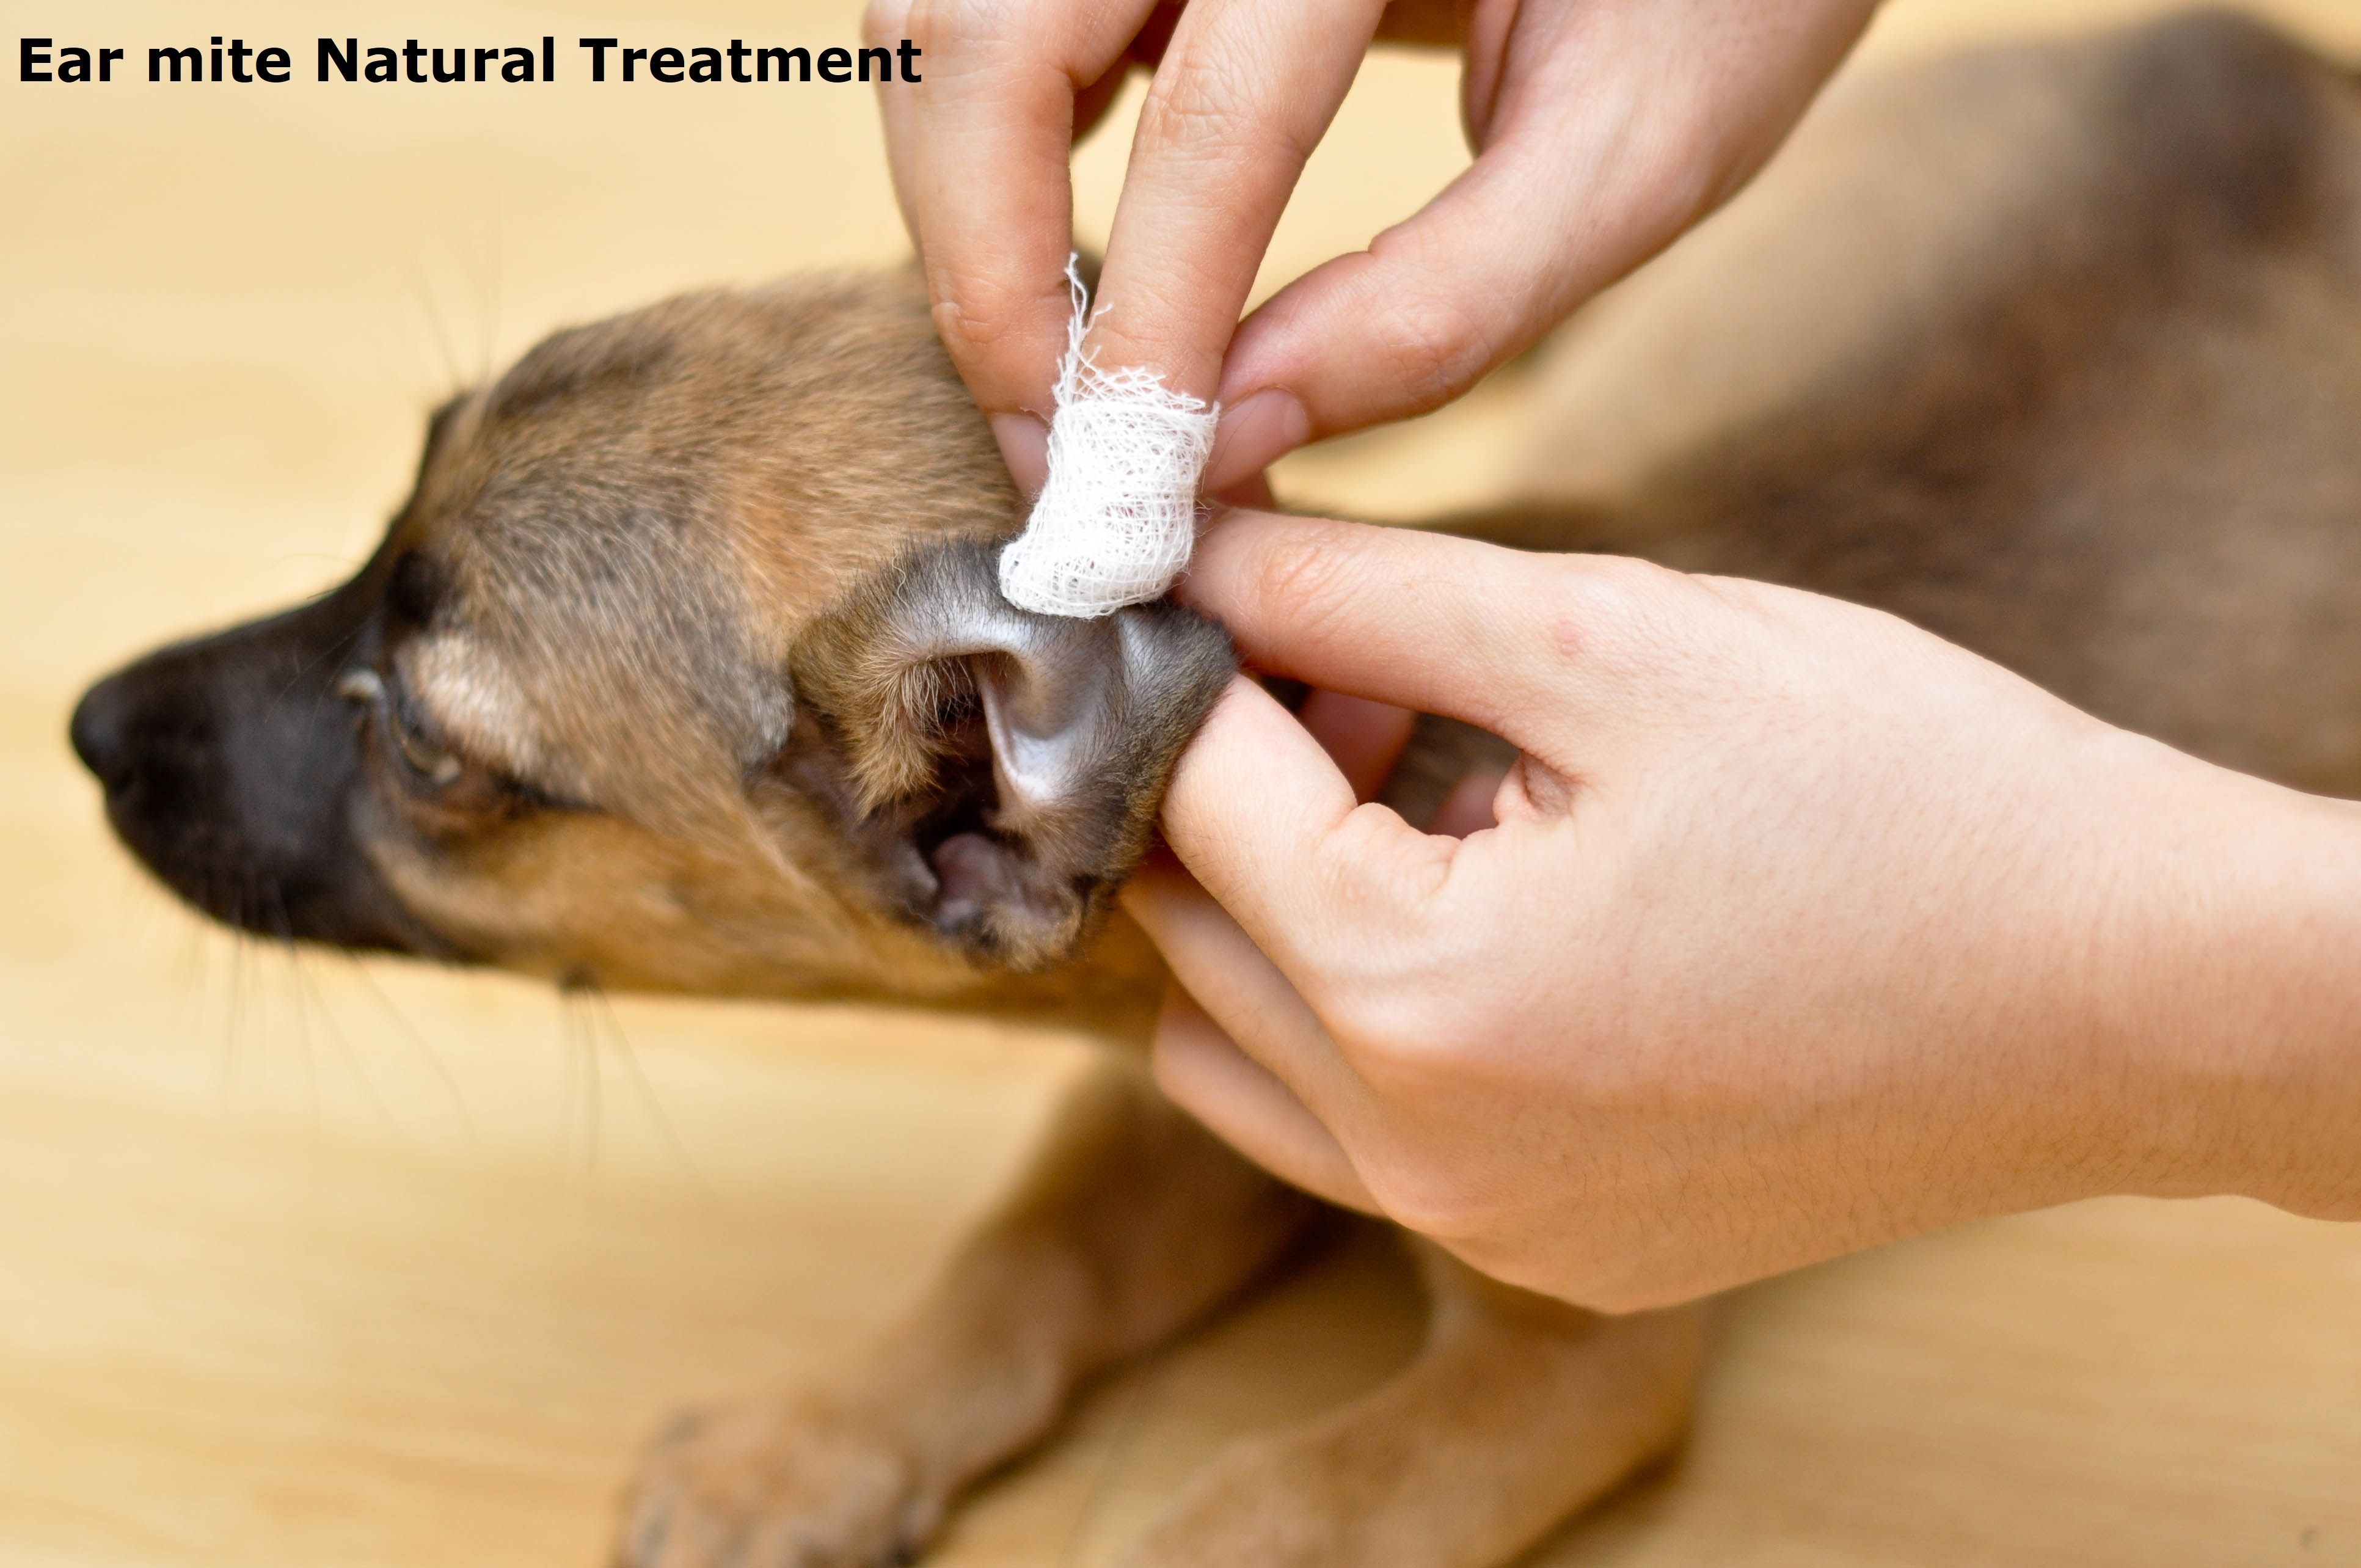 Home Natural Remedies For Health Problems Health Tips For Better Life Cleaning Dogs Ears Dog Ear Cleaner Homemade Dog Ear Cleaner